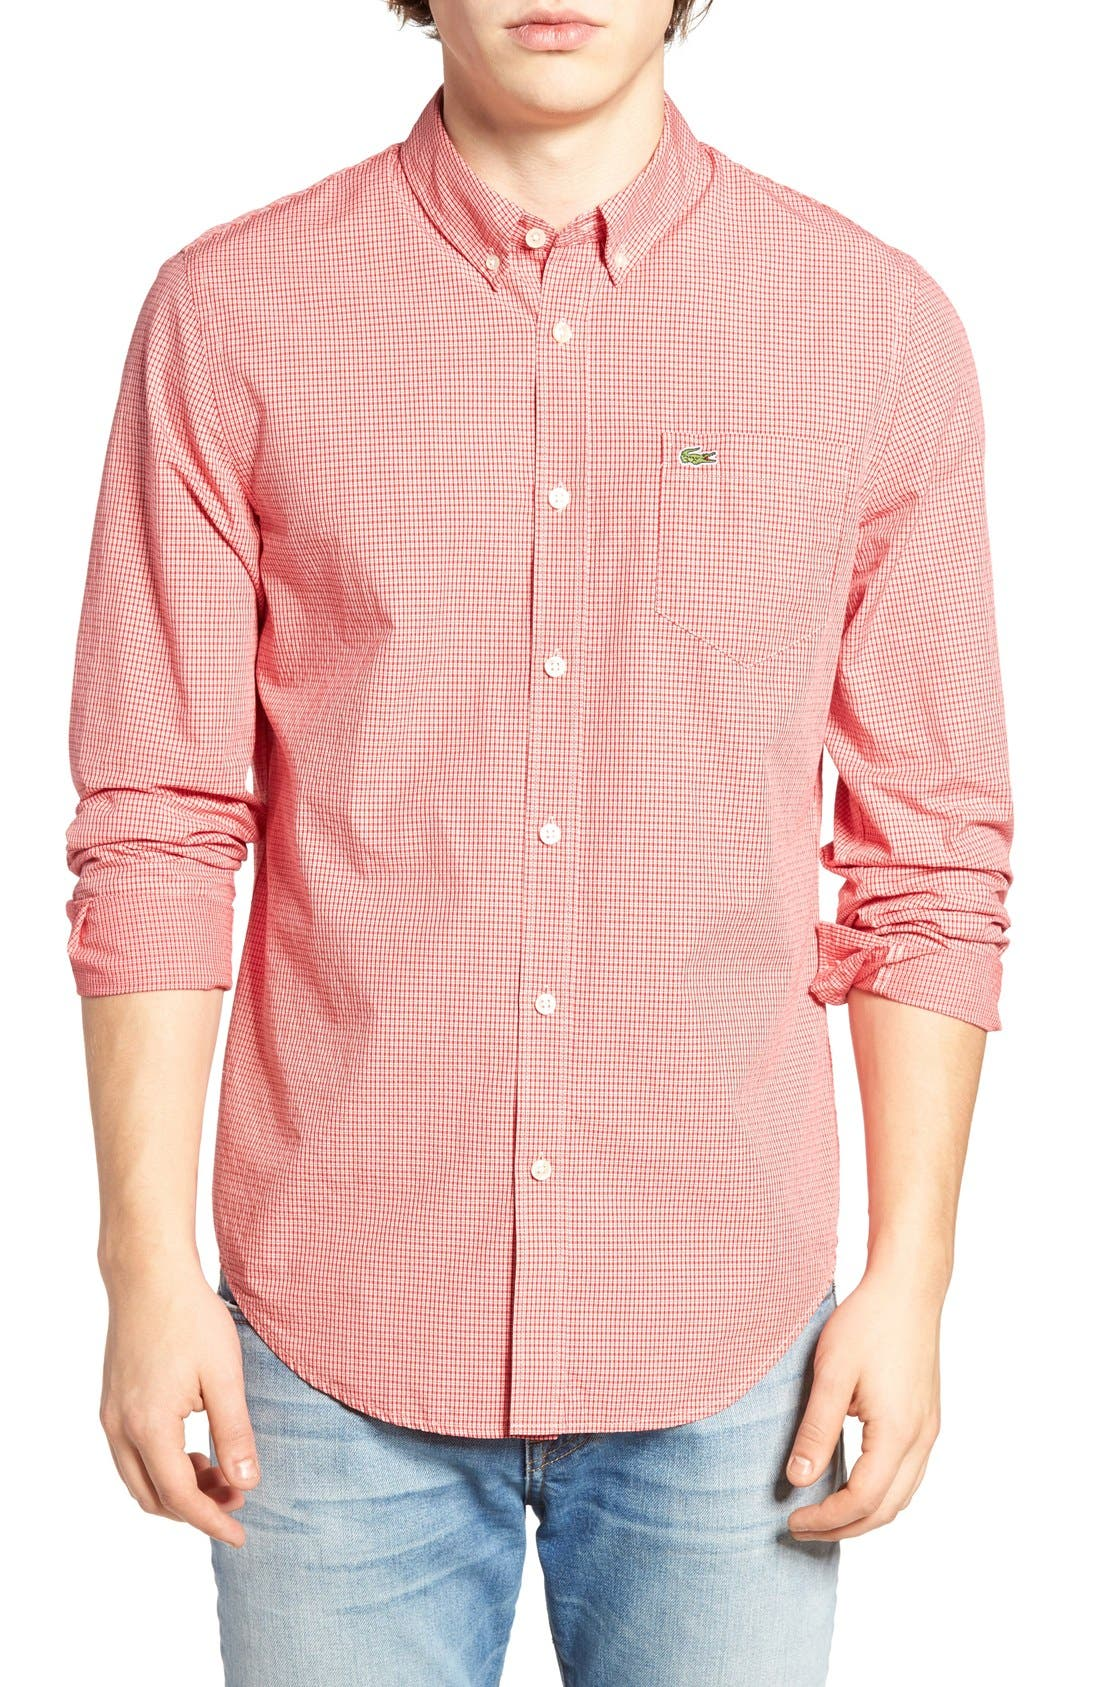 Lacoste Check Shirt